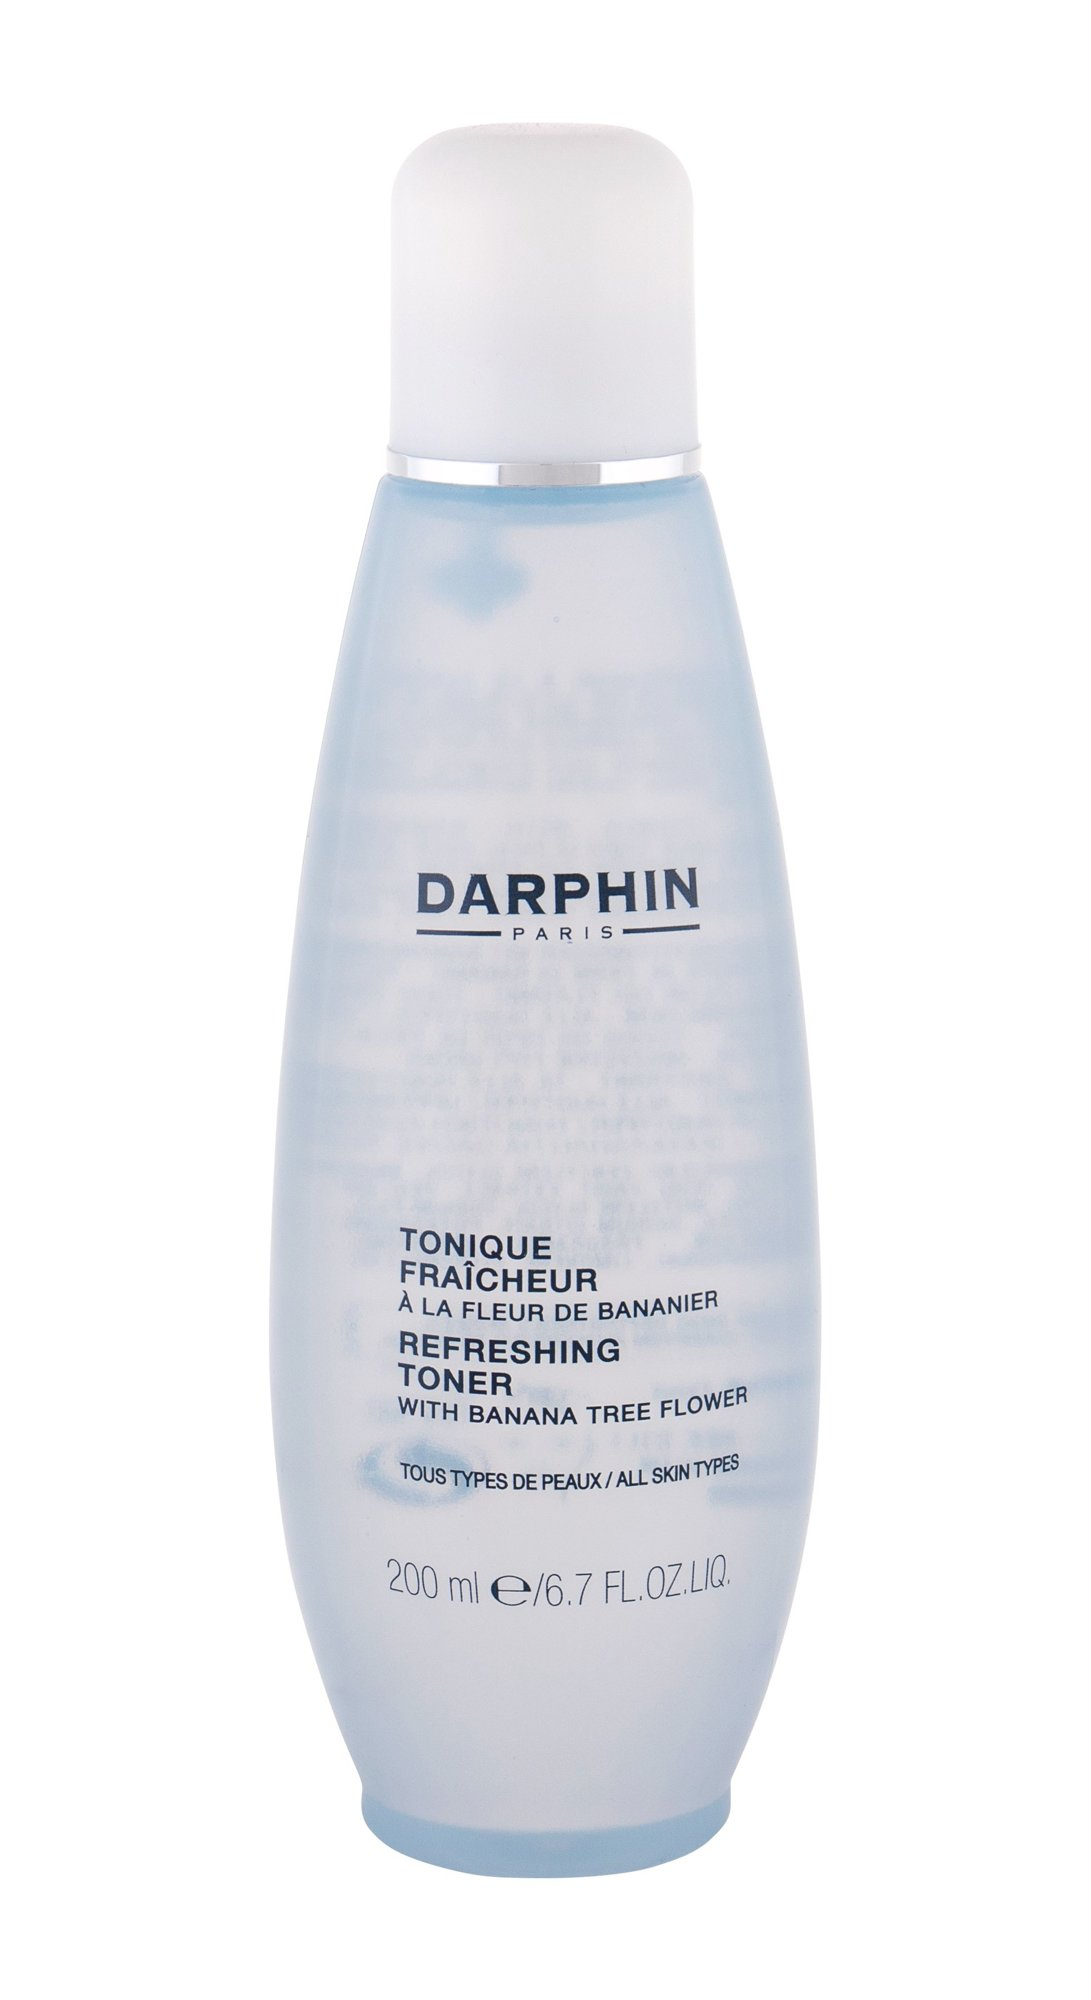 Darphin Cleansers Facial Lotion and Spray 200ml  Refreshing Toner